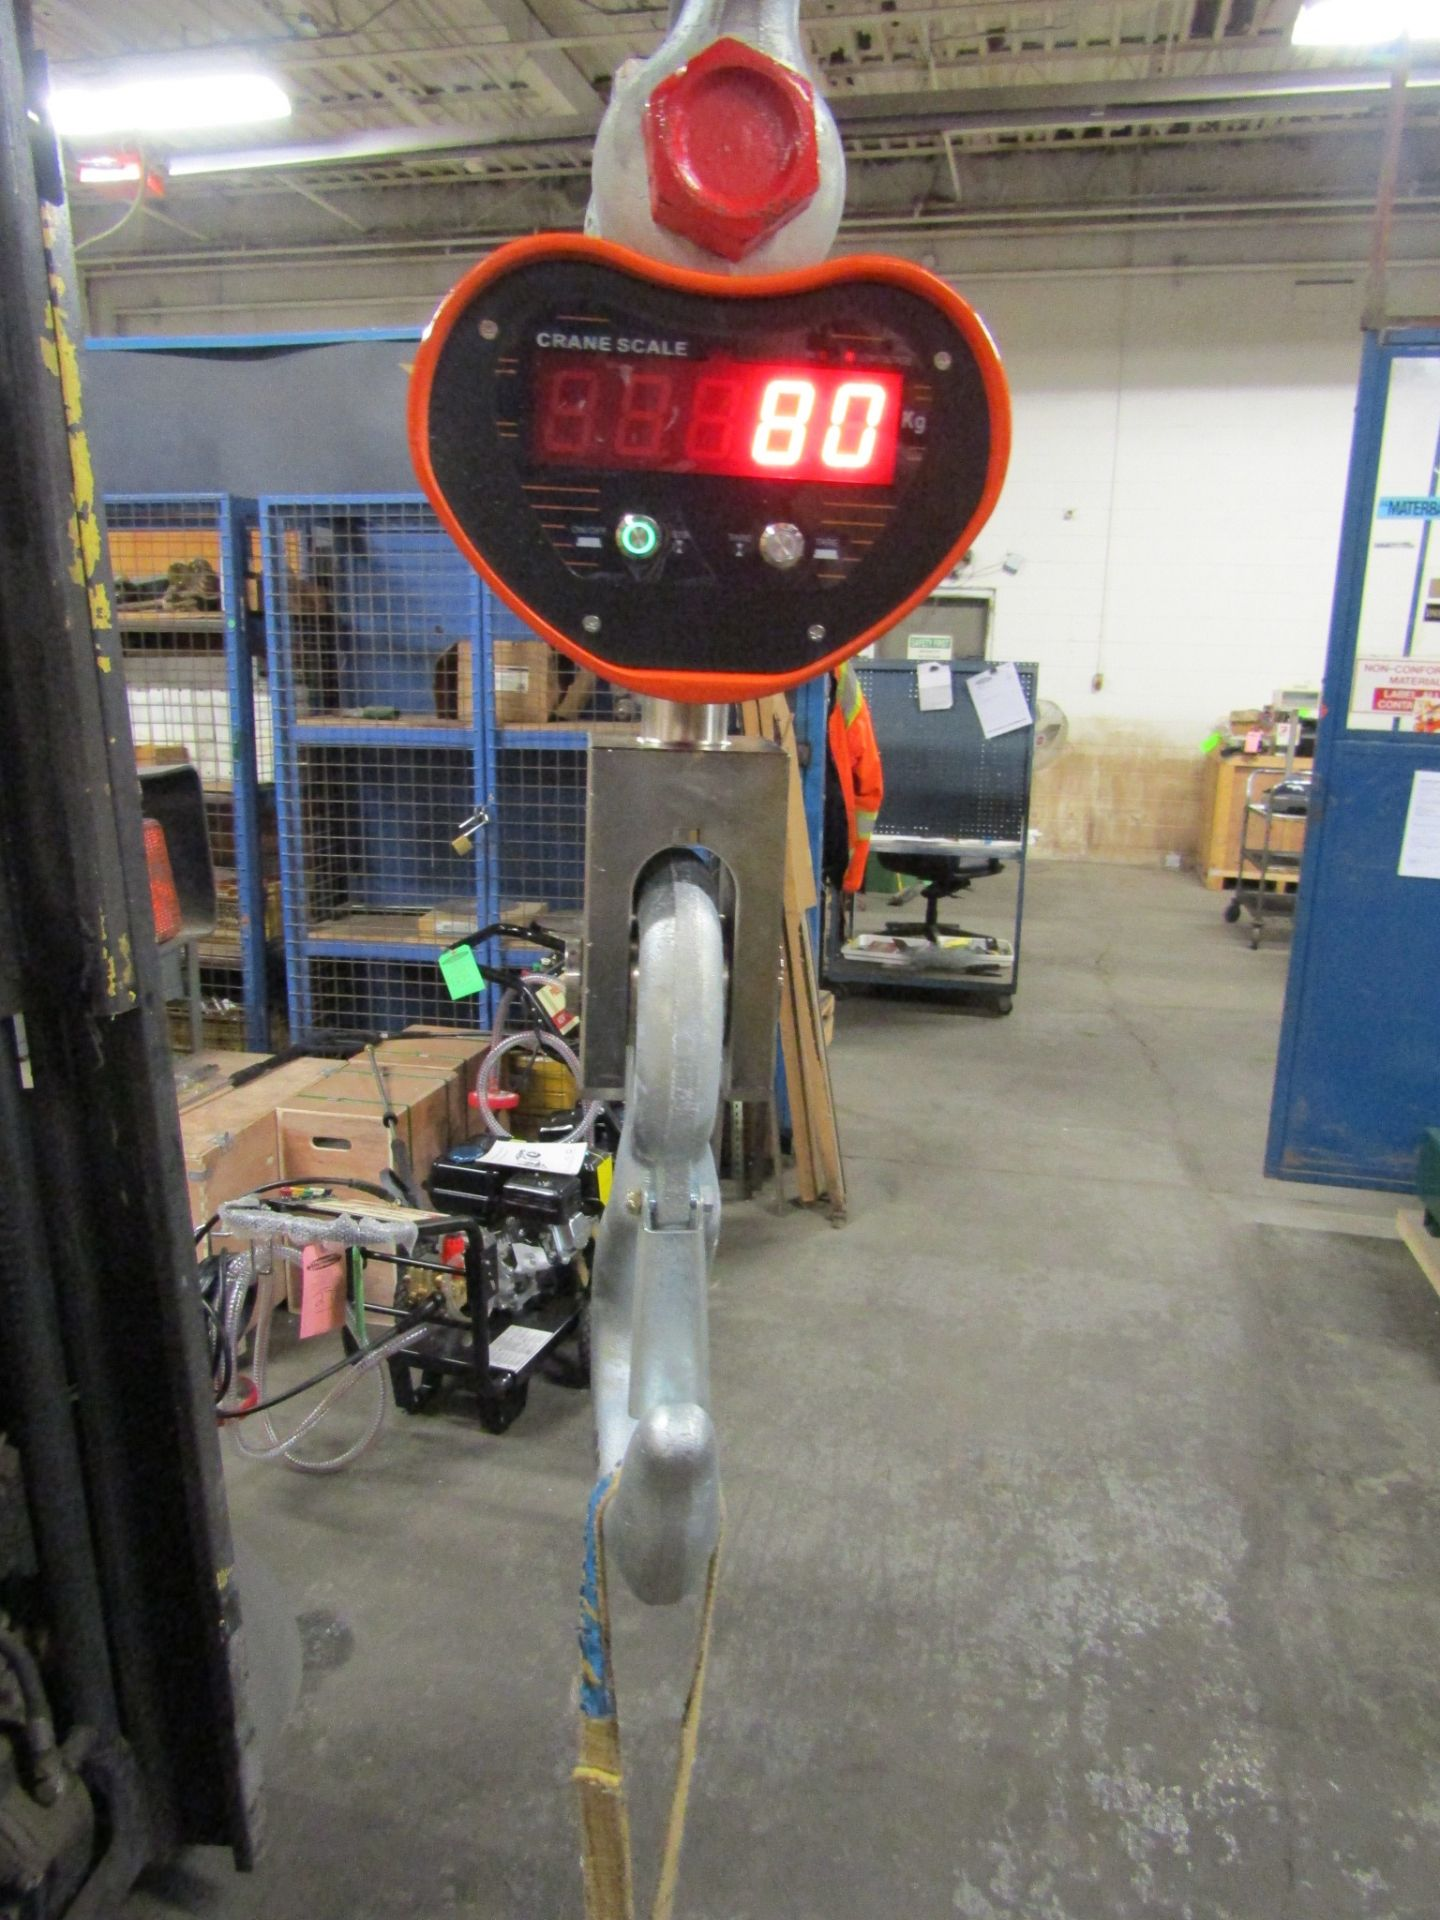 Hanging MINT Digital Crane Scale 40,000lbs 20 ton Capacity - complete with remote control and - Image 2 of 3